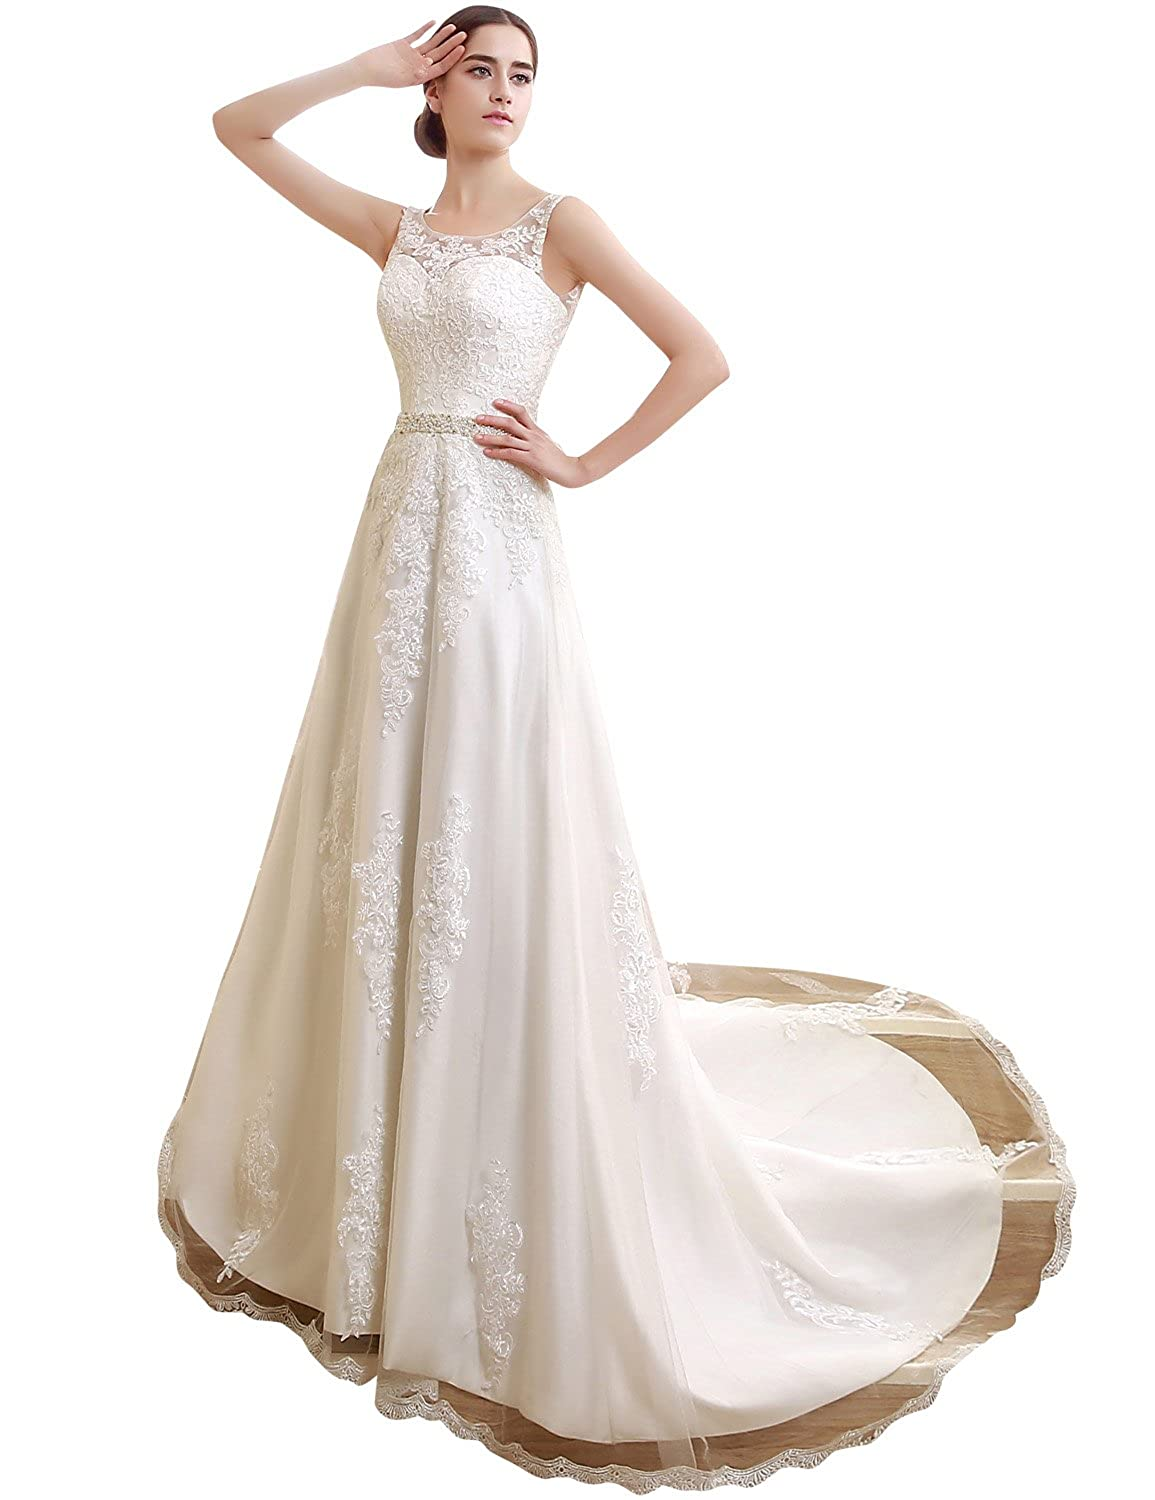 Sarahbridal Women's A-line Bridal Ball Gown Sheer Neck Satin Lace Backless Brides Wedding Dresses with Straps SSQS06